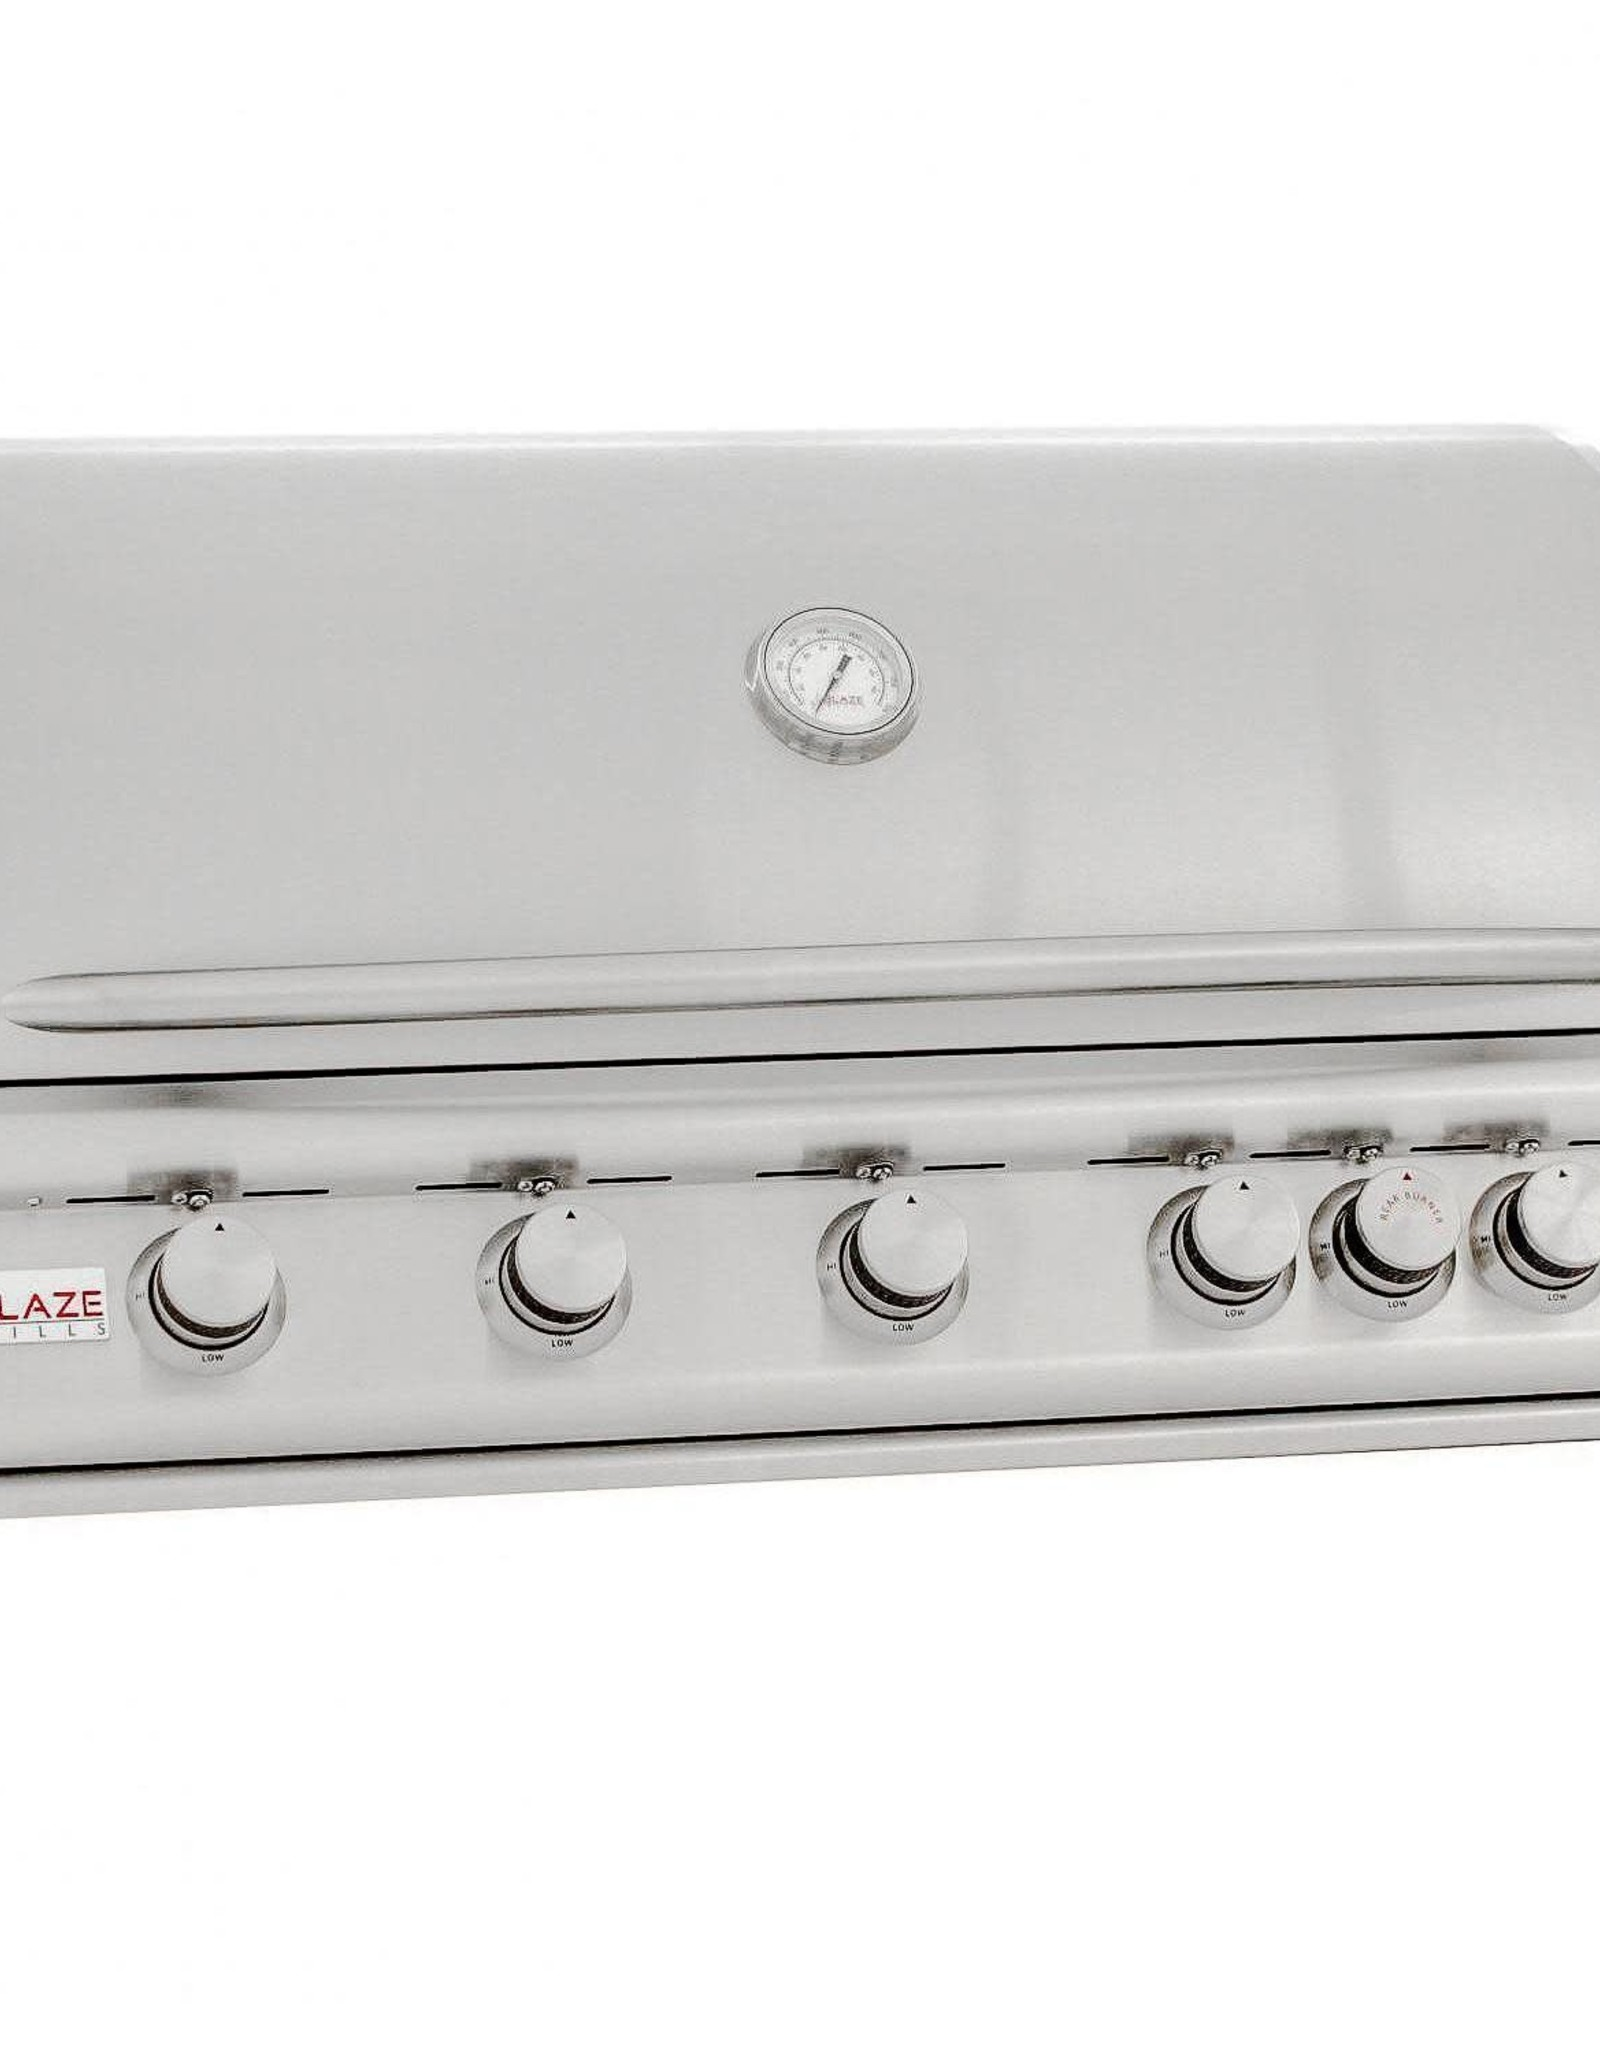 Blaze Outdoor Products Blaze LTE 40-Inch 5-Burner Built-In Natural Gas Grill With Rear Infrared Burner & Grill Lights - BLZ-5LTE2-NG